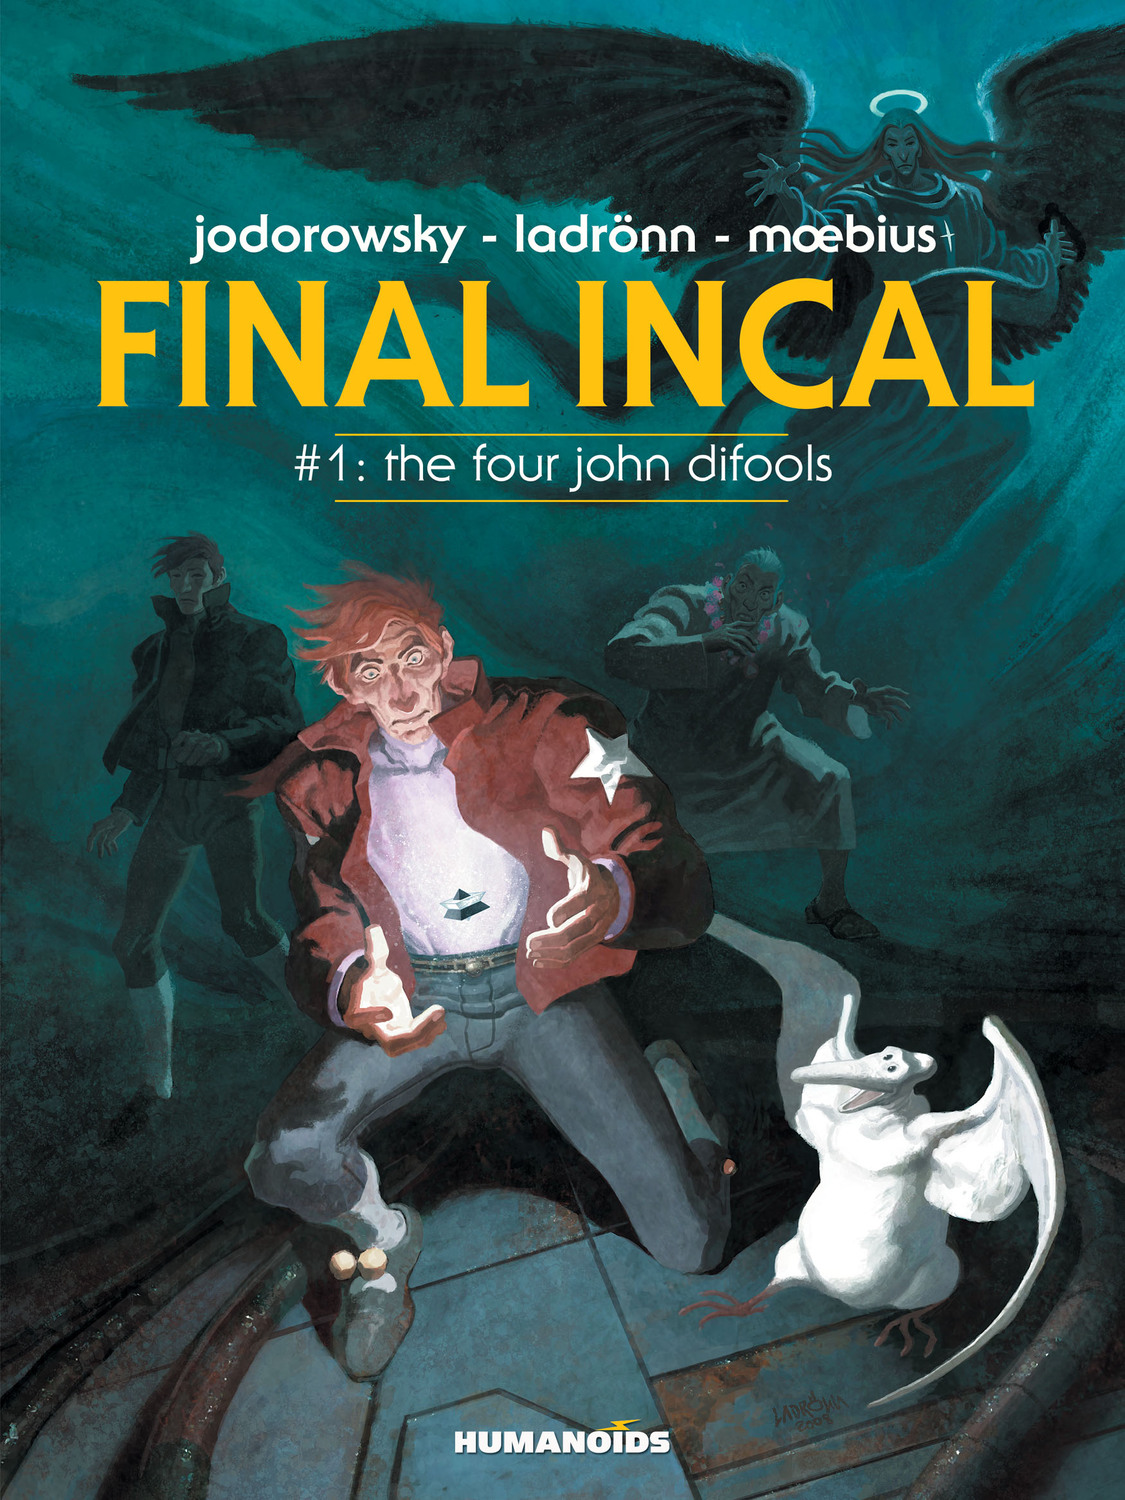 Final Incal #1 : The Four John Difools - Digital Comic